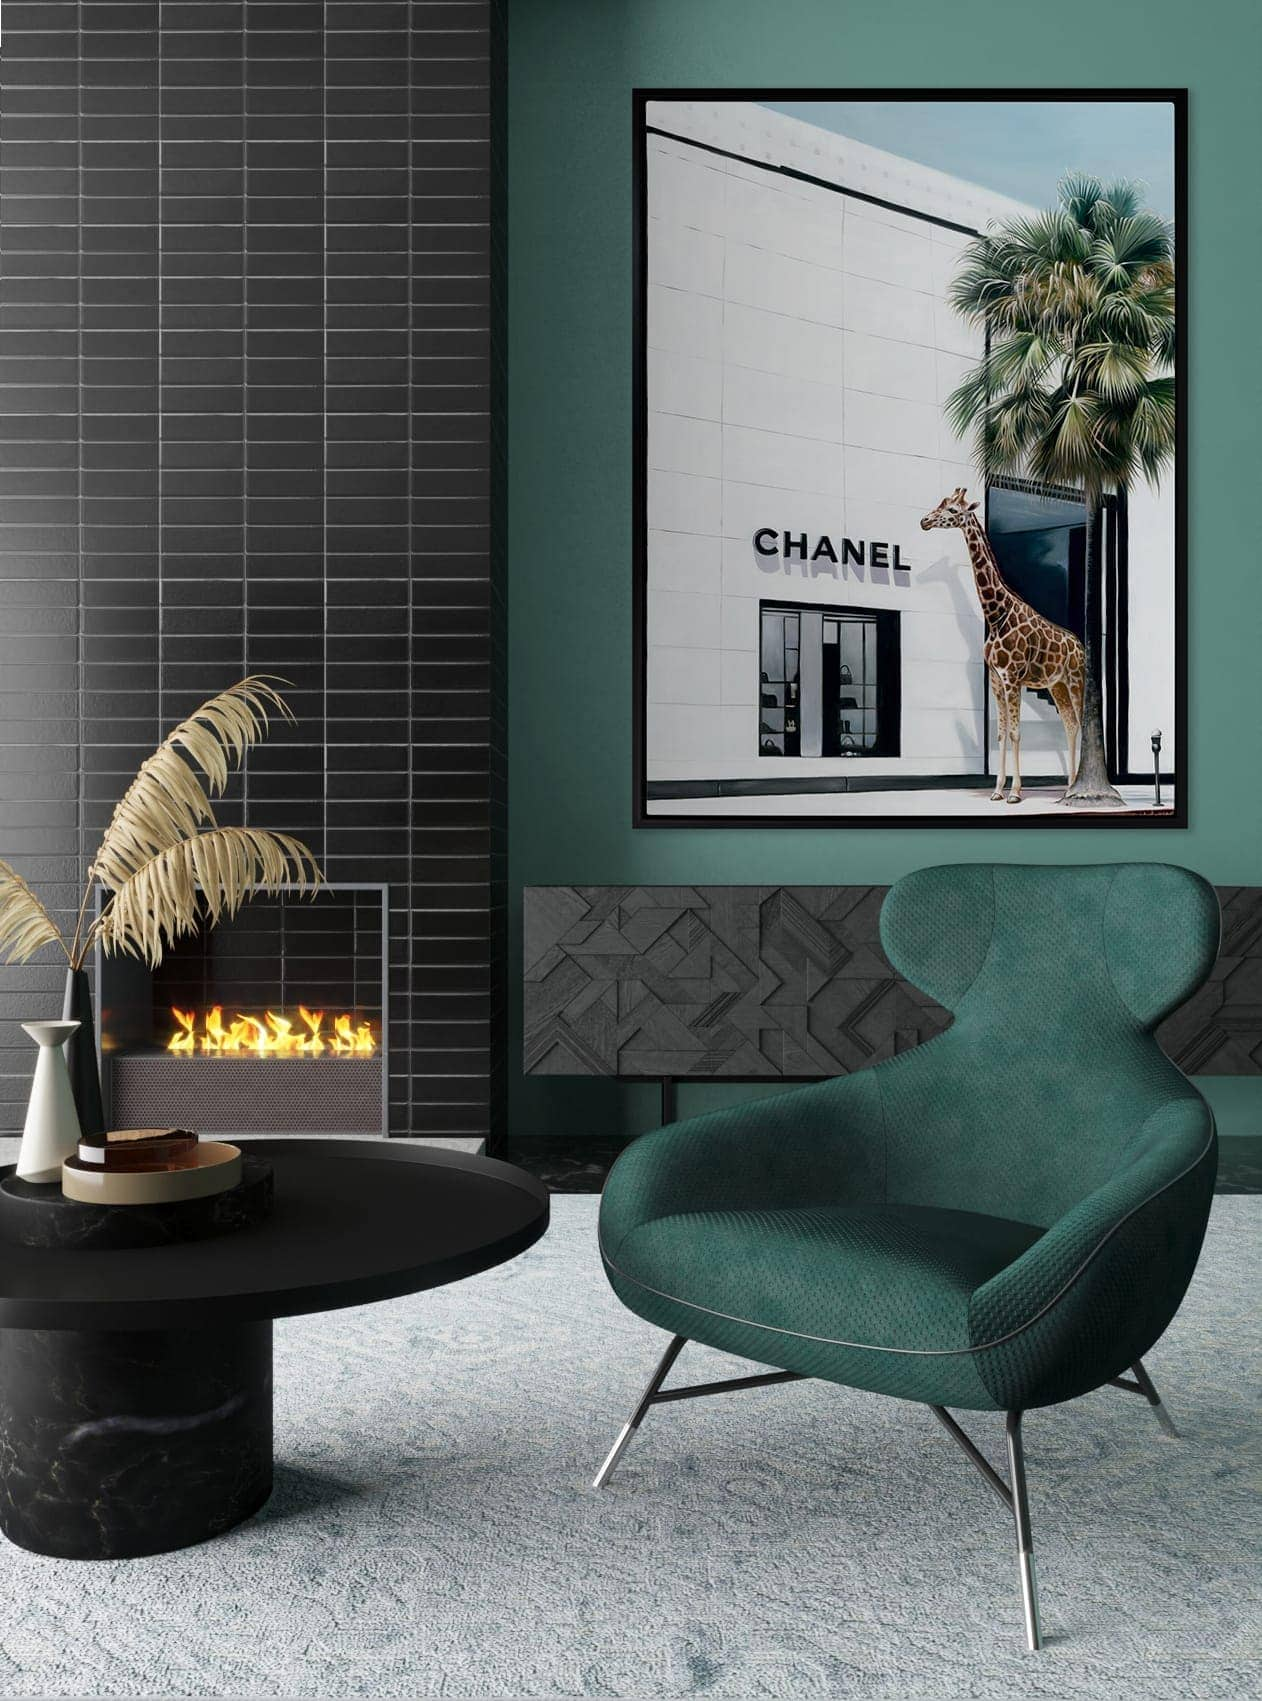 urban road chanel art in living room with emerald green armchair and fireplace